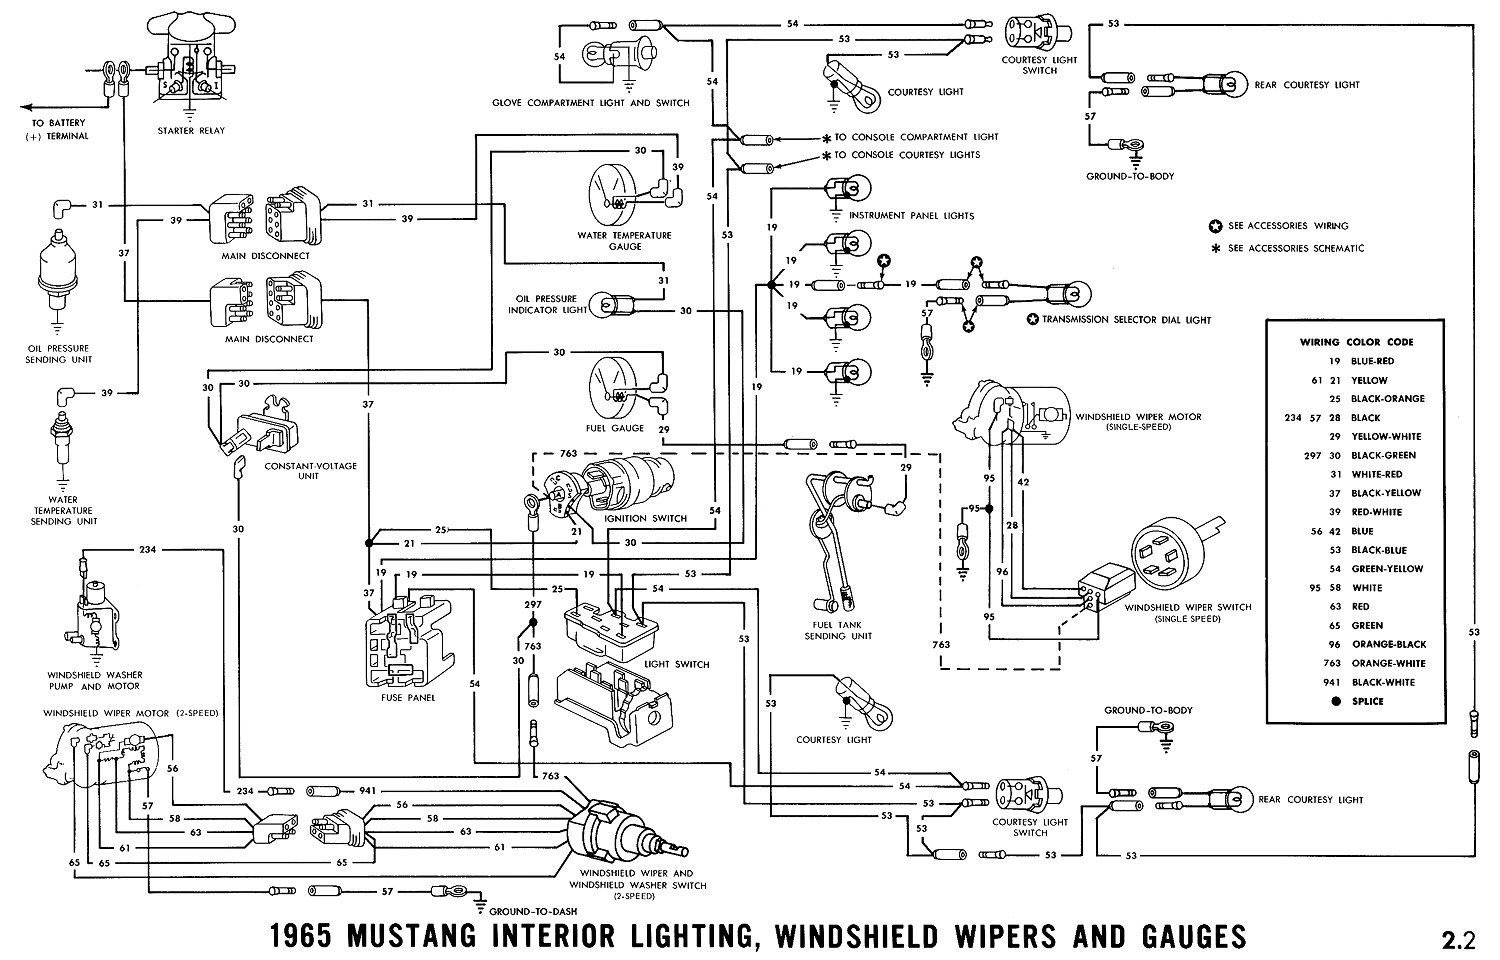 65 mustang ignition switch wiring diagram detailed wiring diagrams rh franch secretariat com